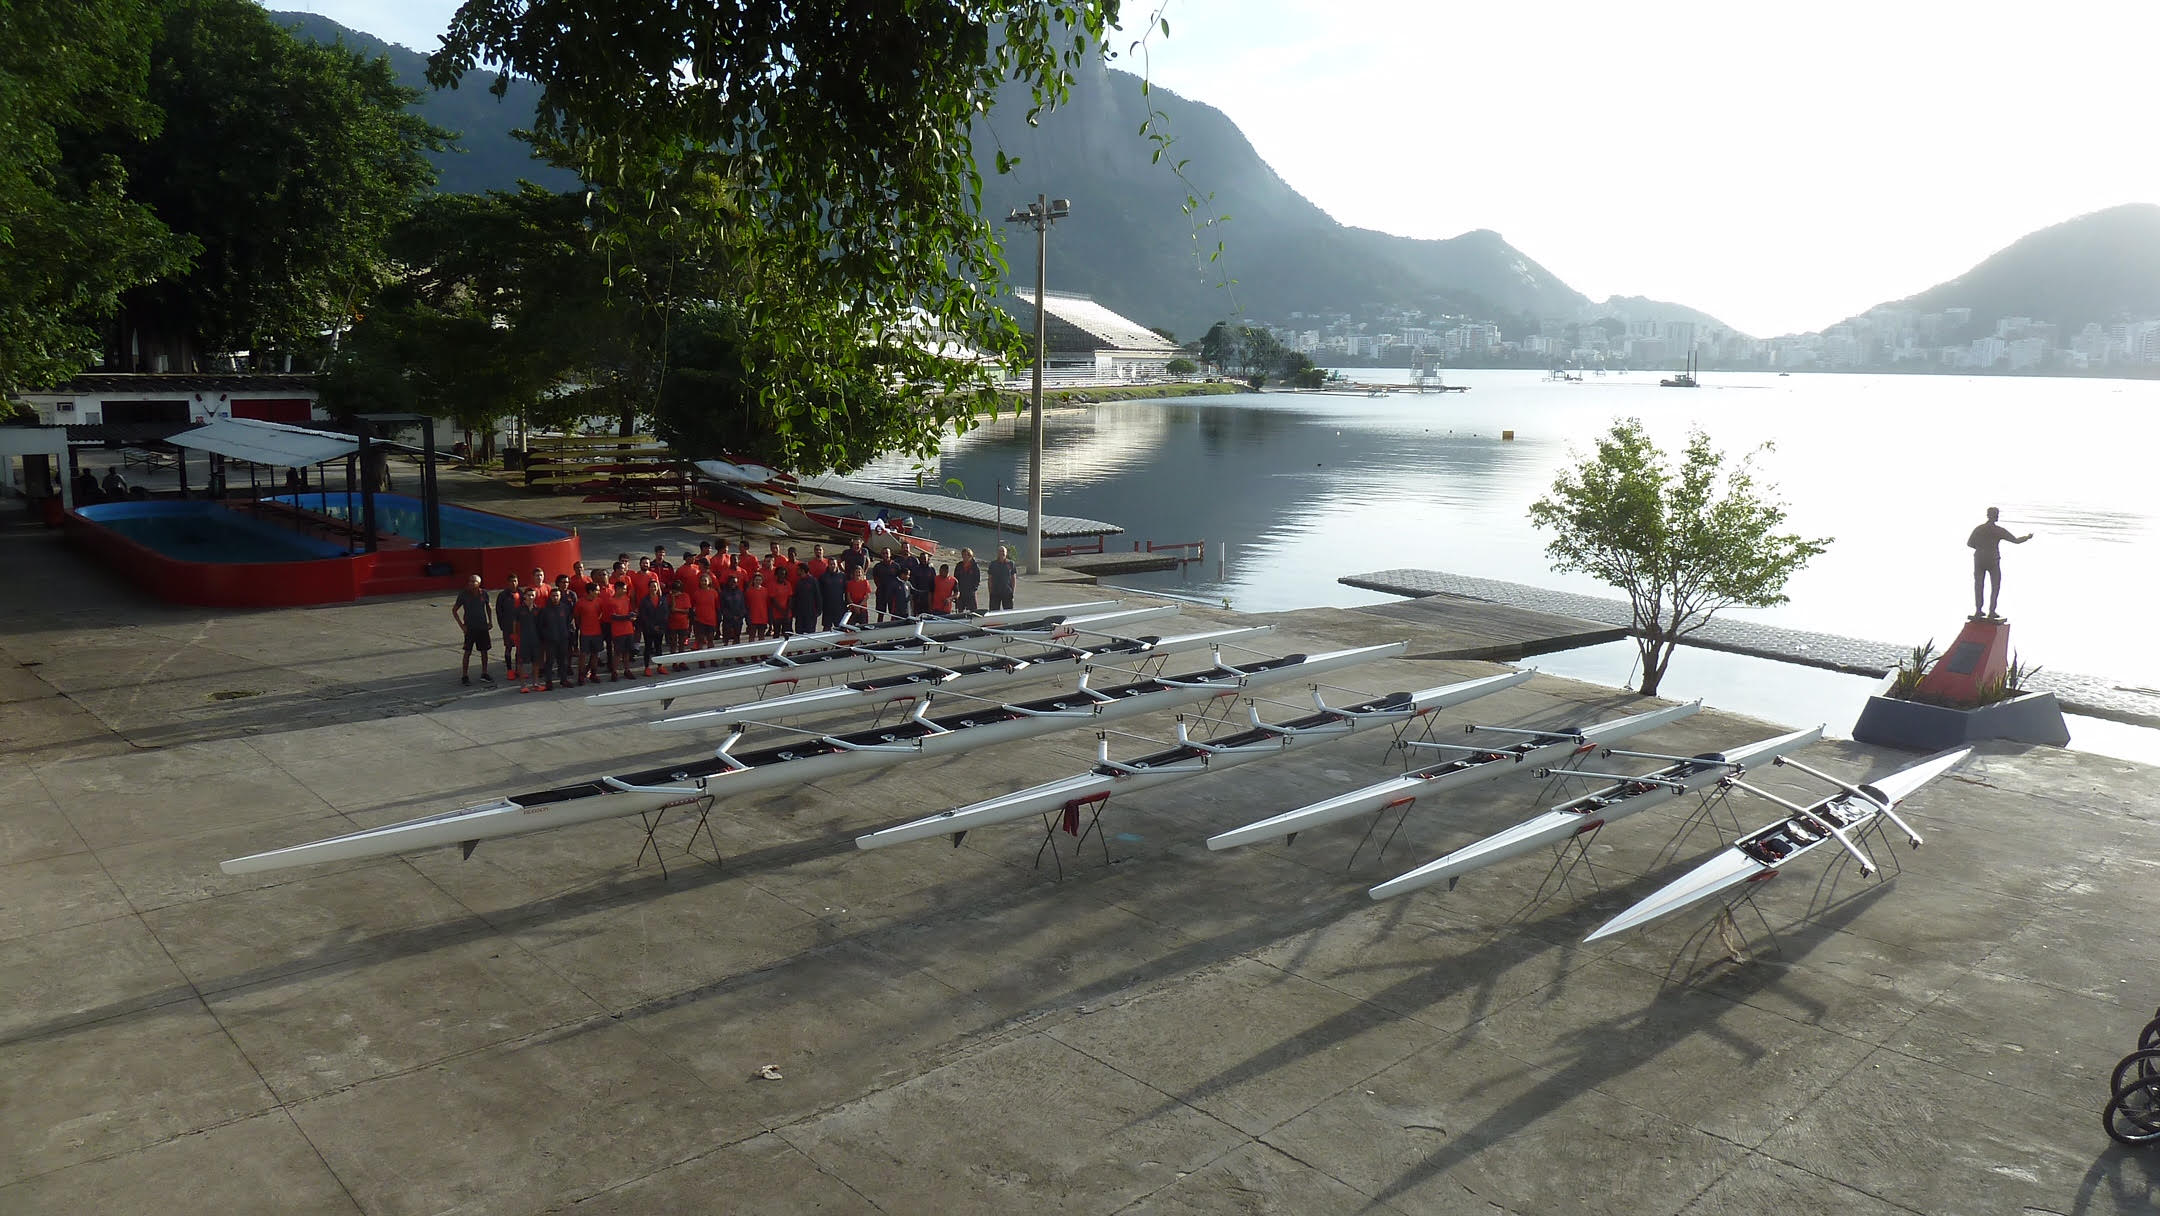 Flamengo Rowing Club